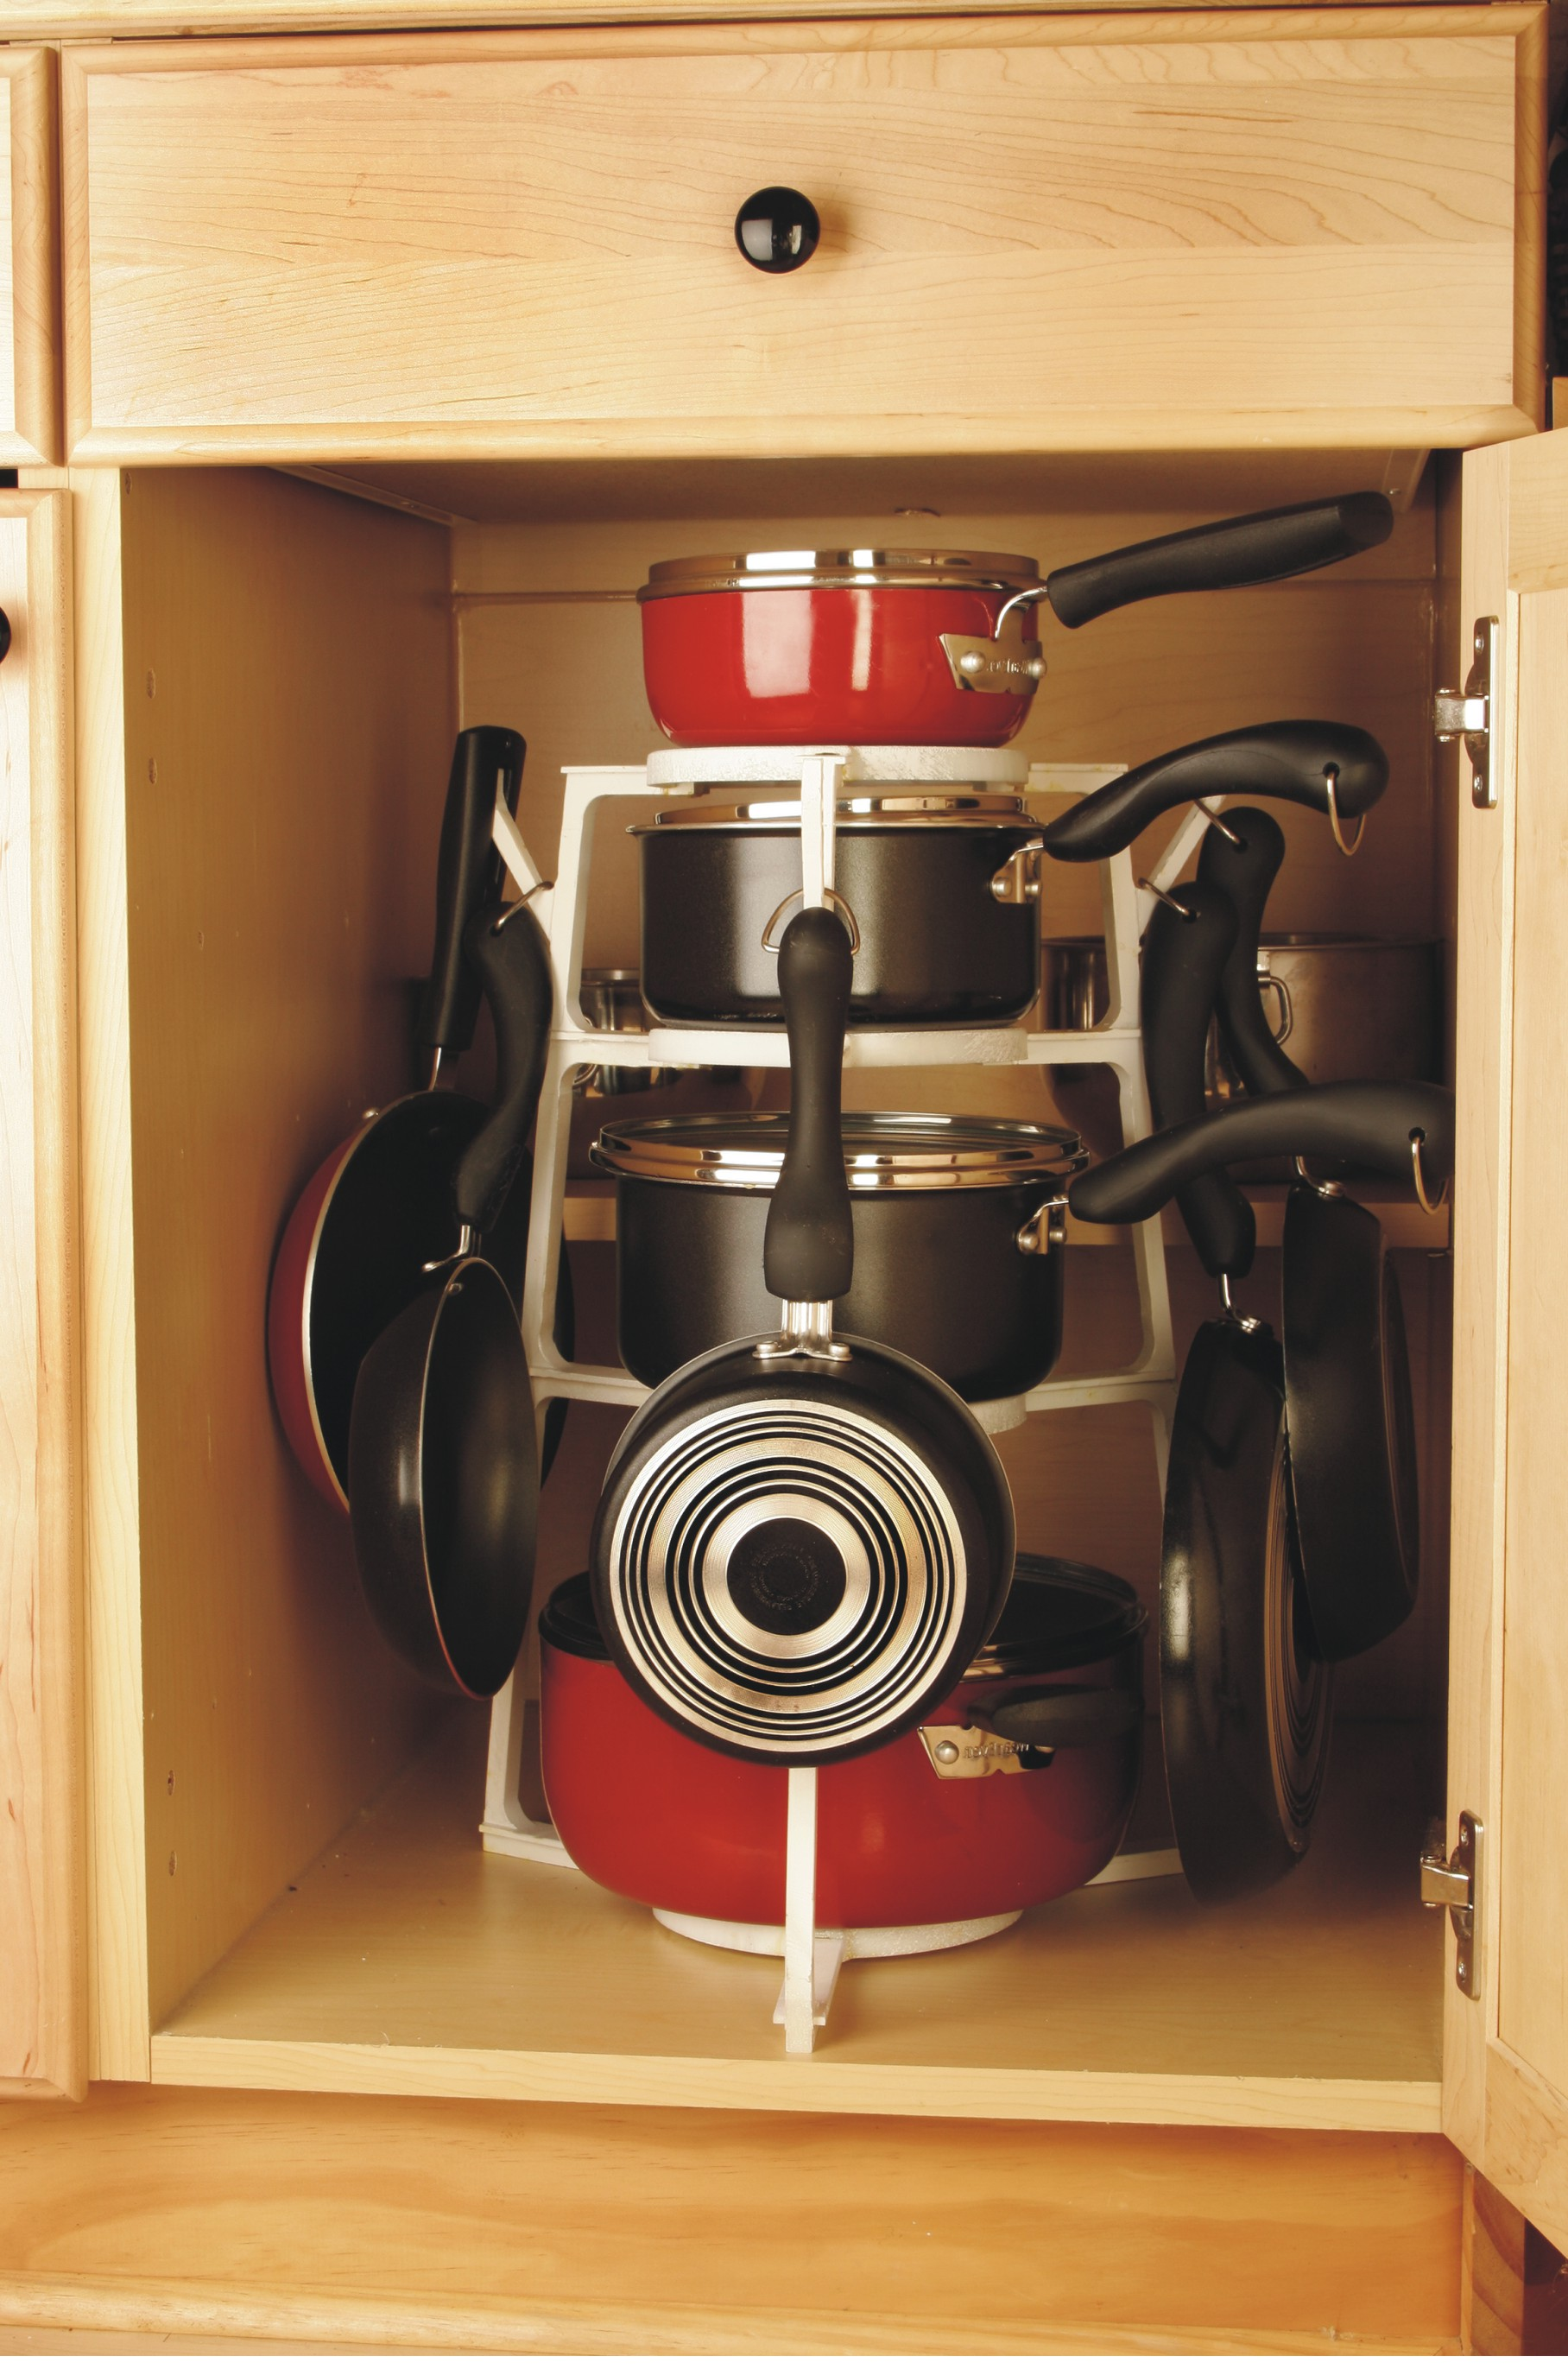 CABINETS BEFORE PANTREEHere Is An Example Of What Most Base Kitchen Cabinets  Look Like. YOUR CABINETS WITH A PANTREE COOKWARE ORGANIZER